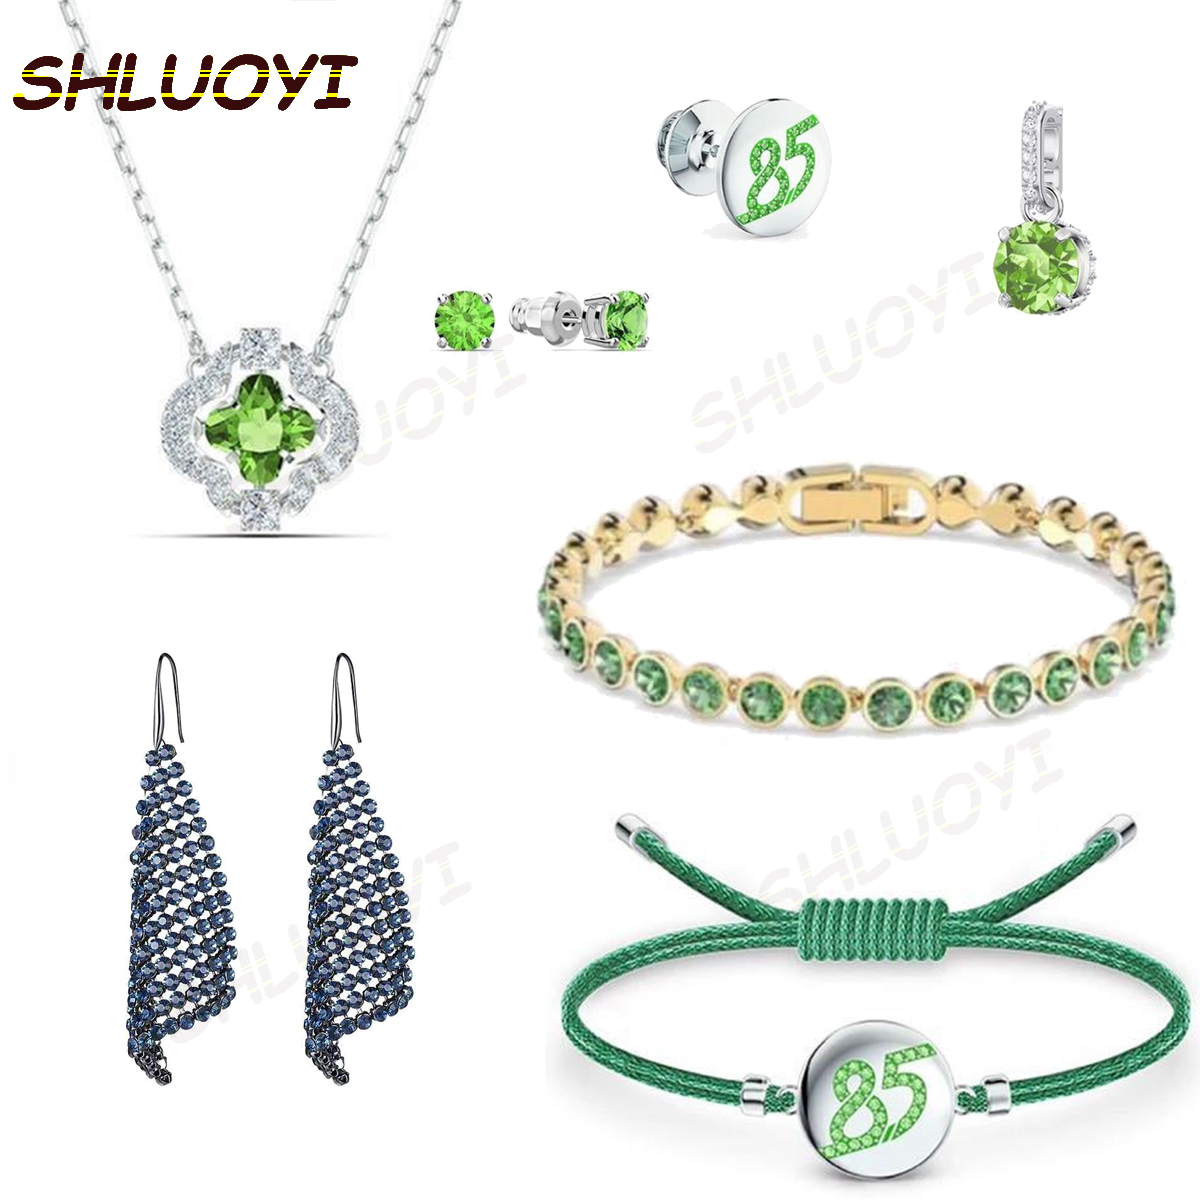 2020 fashion jewelry SWA new green series, charming 85 style women's exquisite pendant necklace